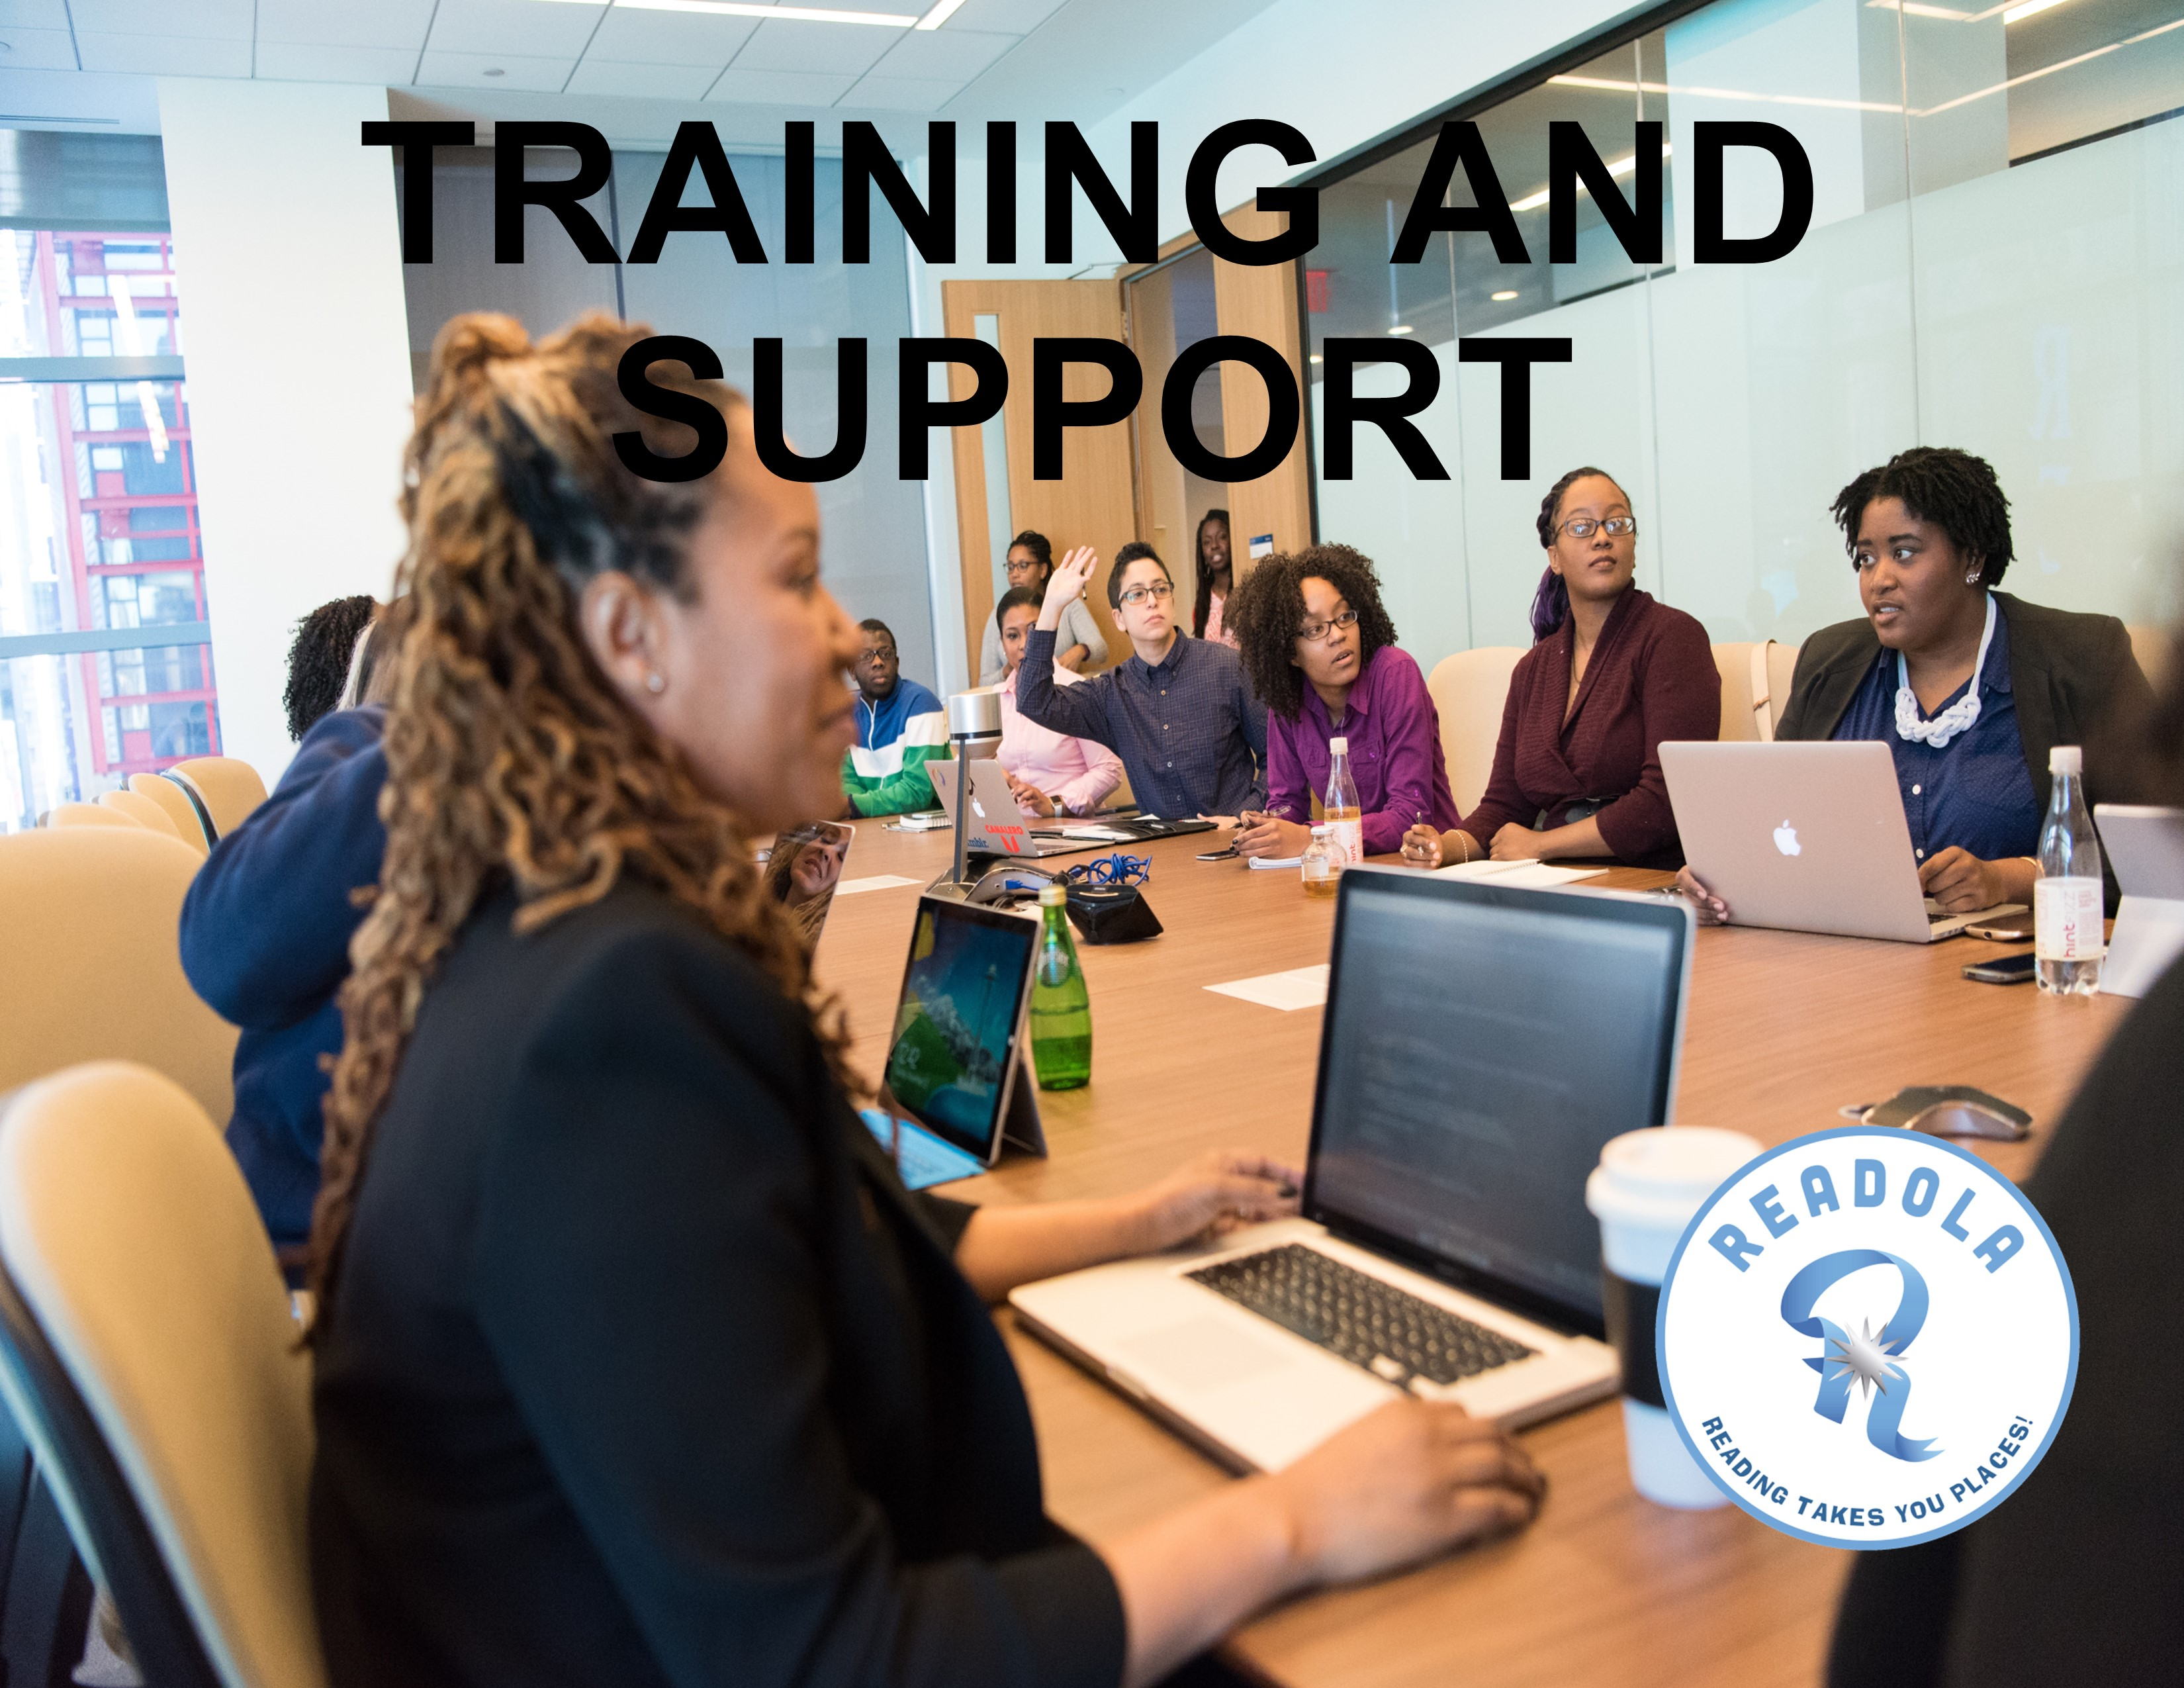 training-and-support.jpg